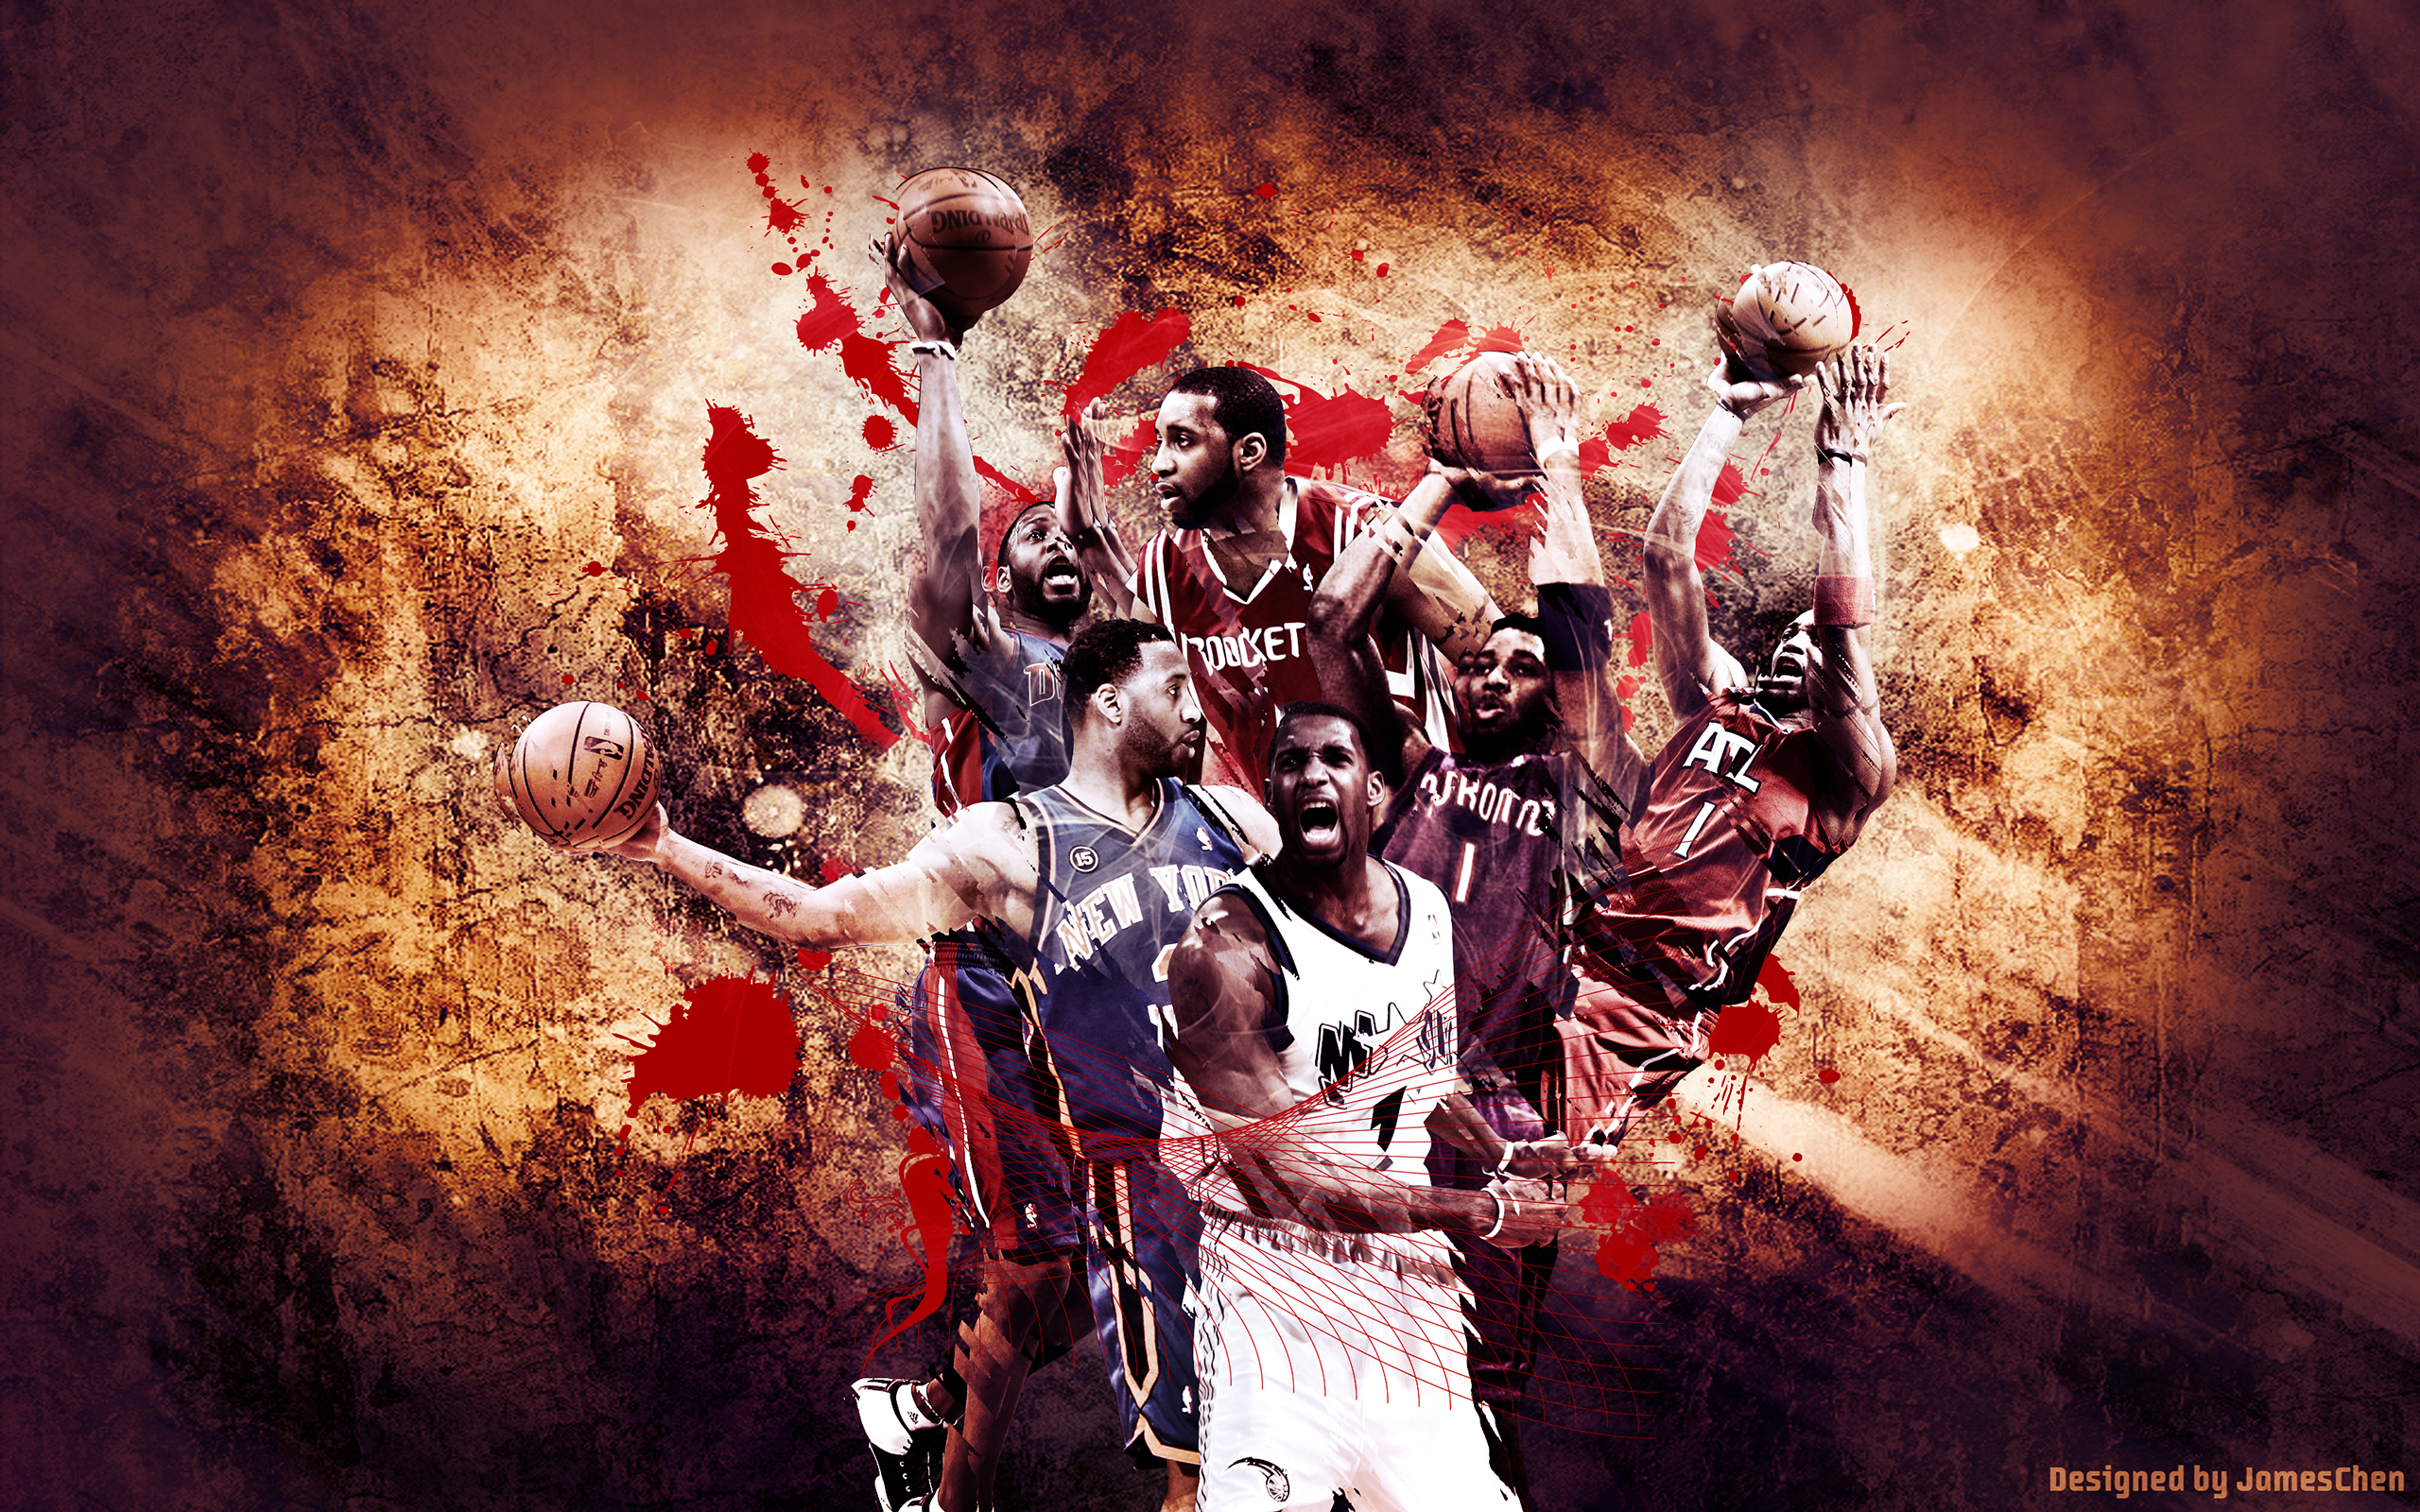 Tracy Mcgrady Nba Career Sport Wallpapers Whollescom 2560x1600px